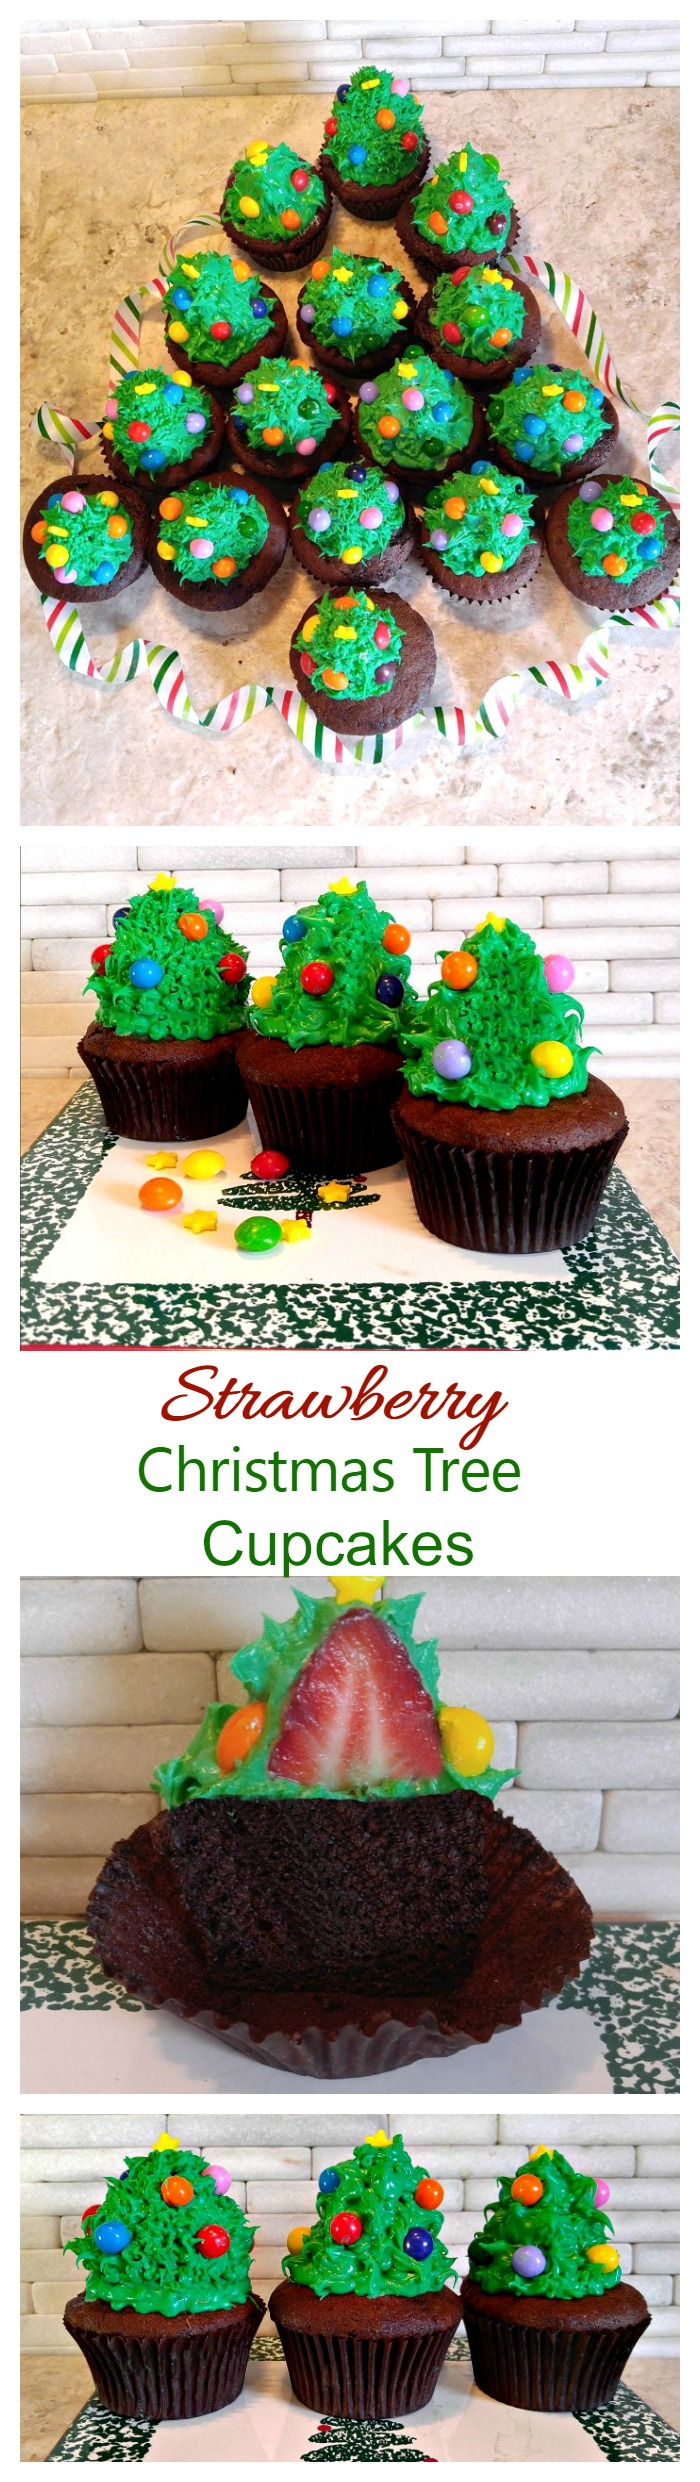 These Christmas tree Cupcakes have a healthy strawberry surprise in the middle of the cupcake!